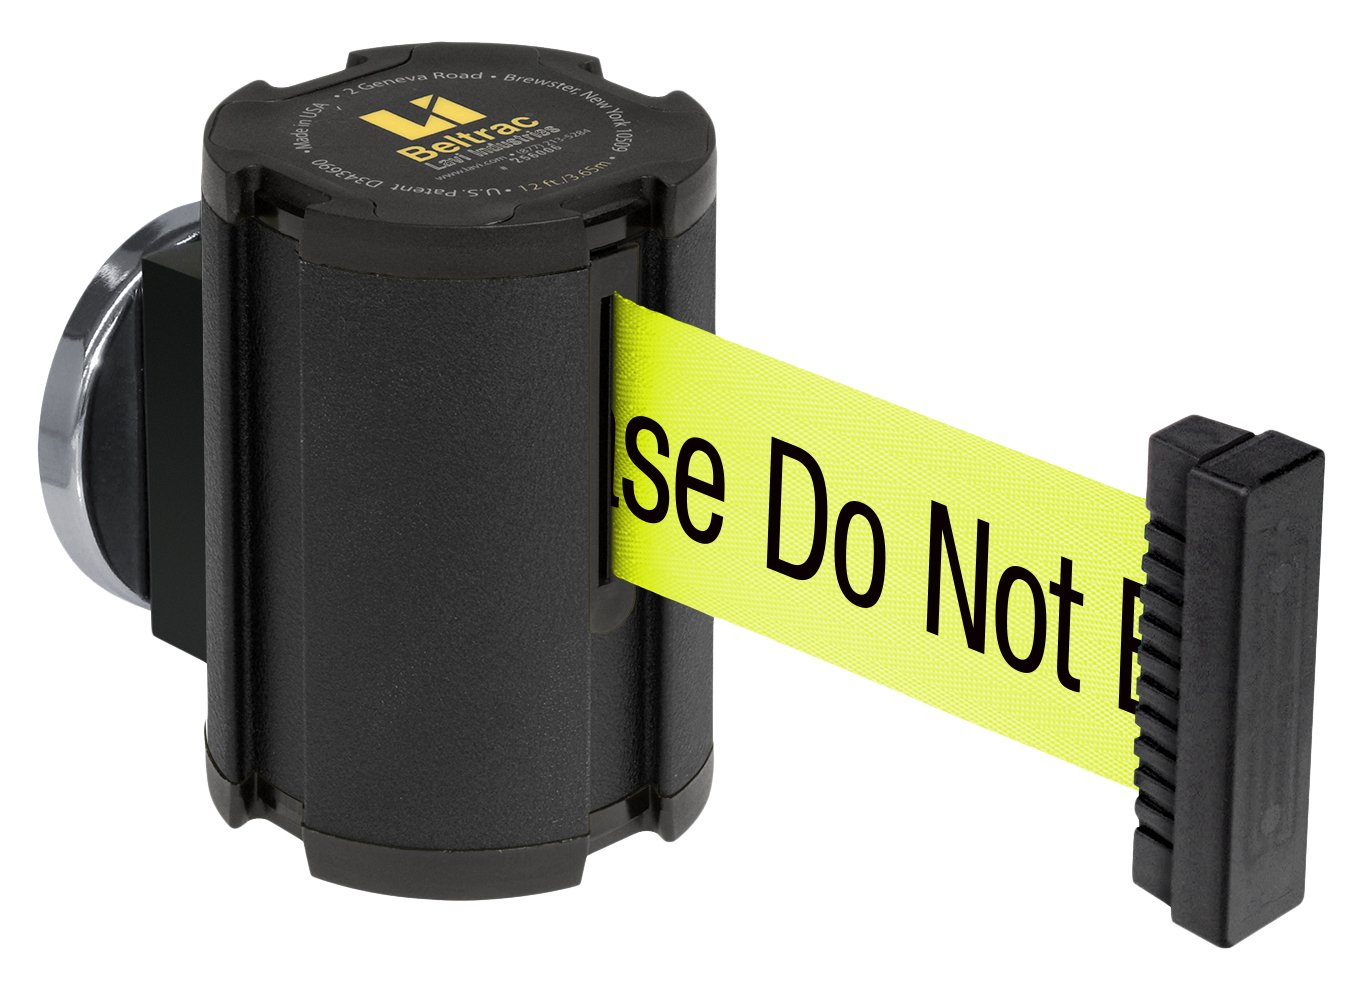 Lavi Industries 50-41300MG/WB/FY/S6 Beltrac 13' Magnetic Wall-Mounted Retractable Belt Barrier, Wrinkle Black with''Caution - Please Do Not Enter'' Belt by Lavi Industries